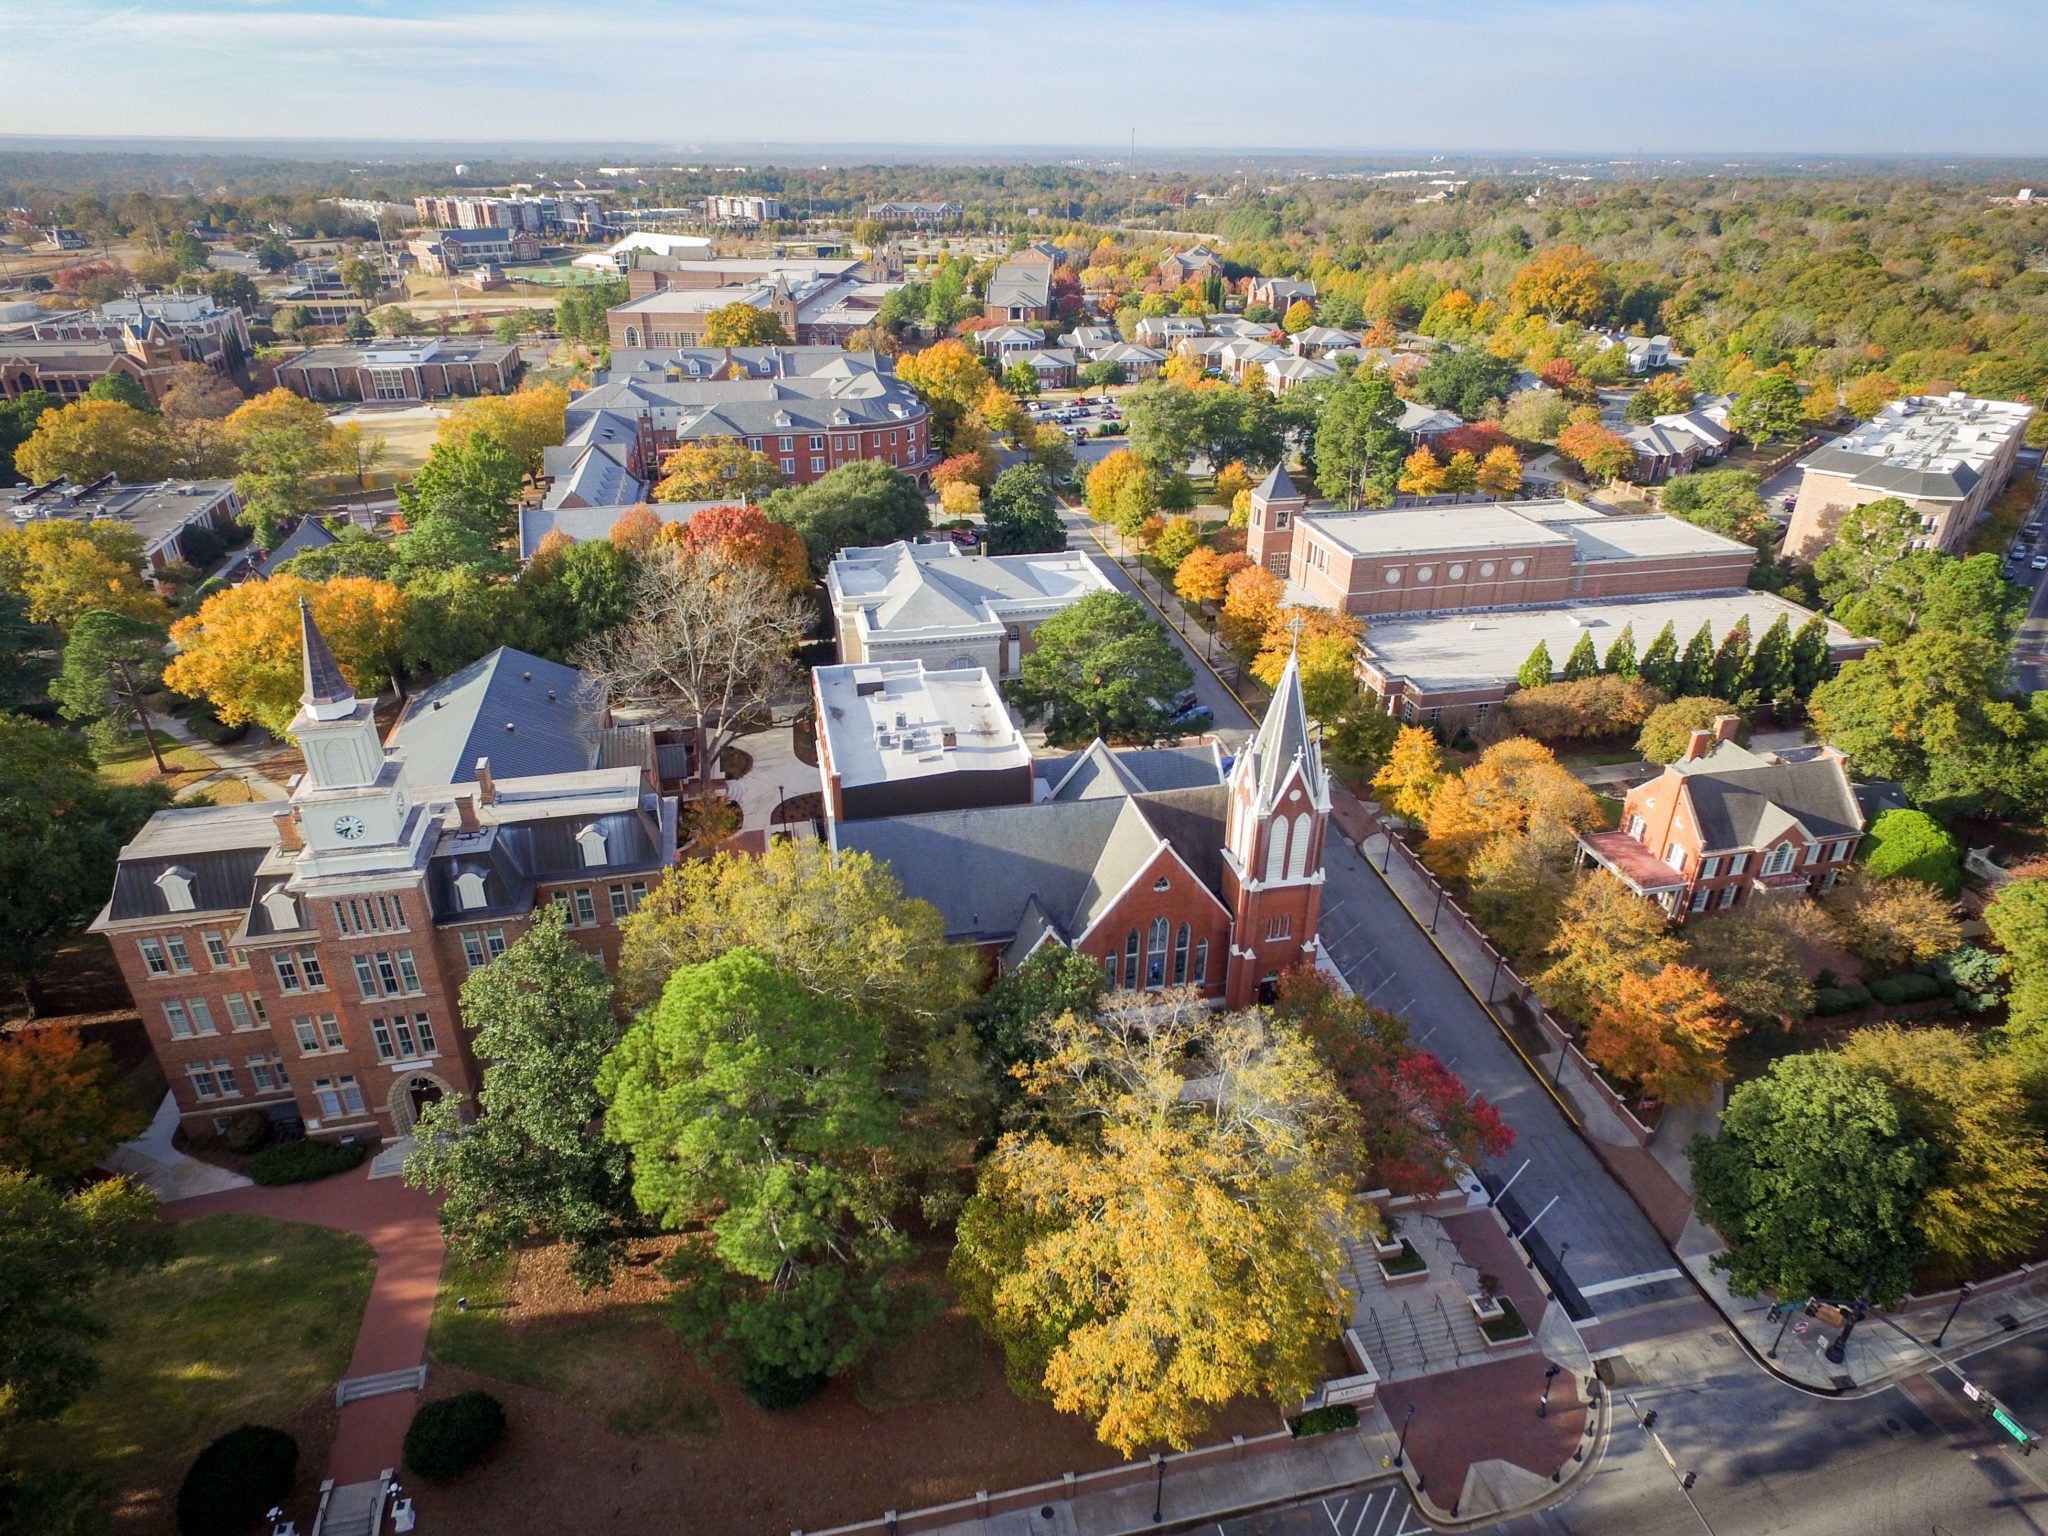 Drone photo of Mercer's campus